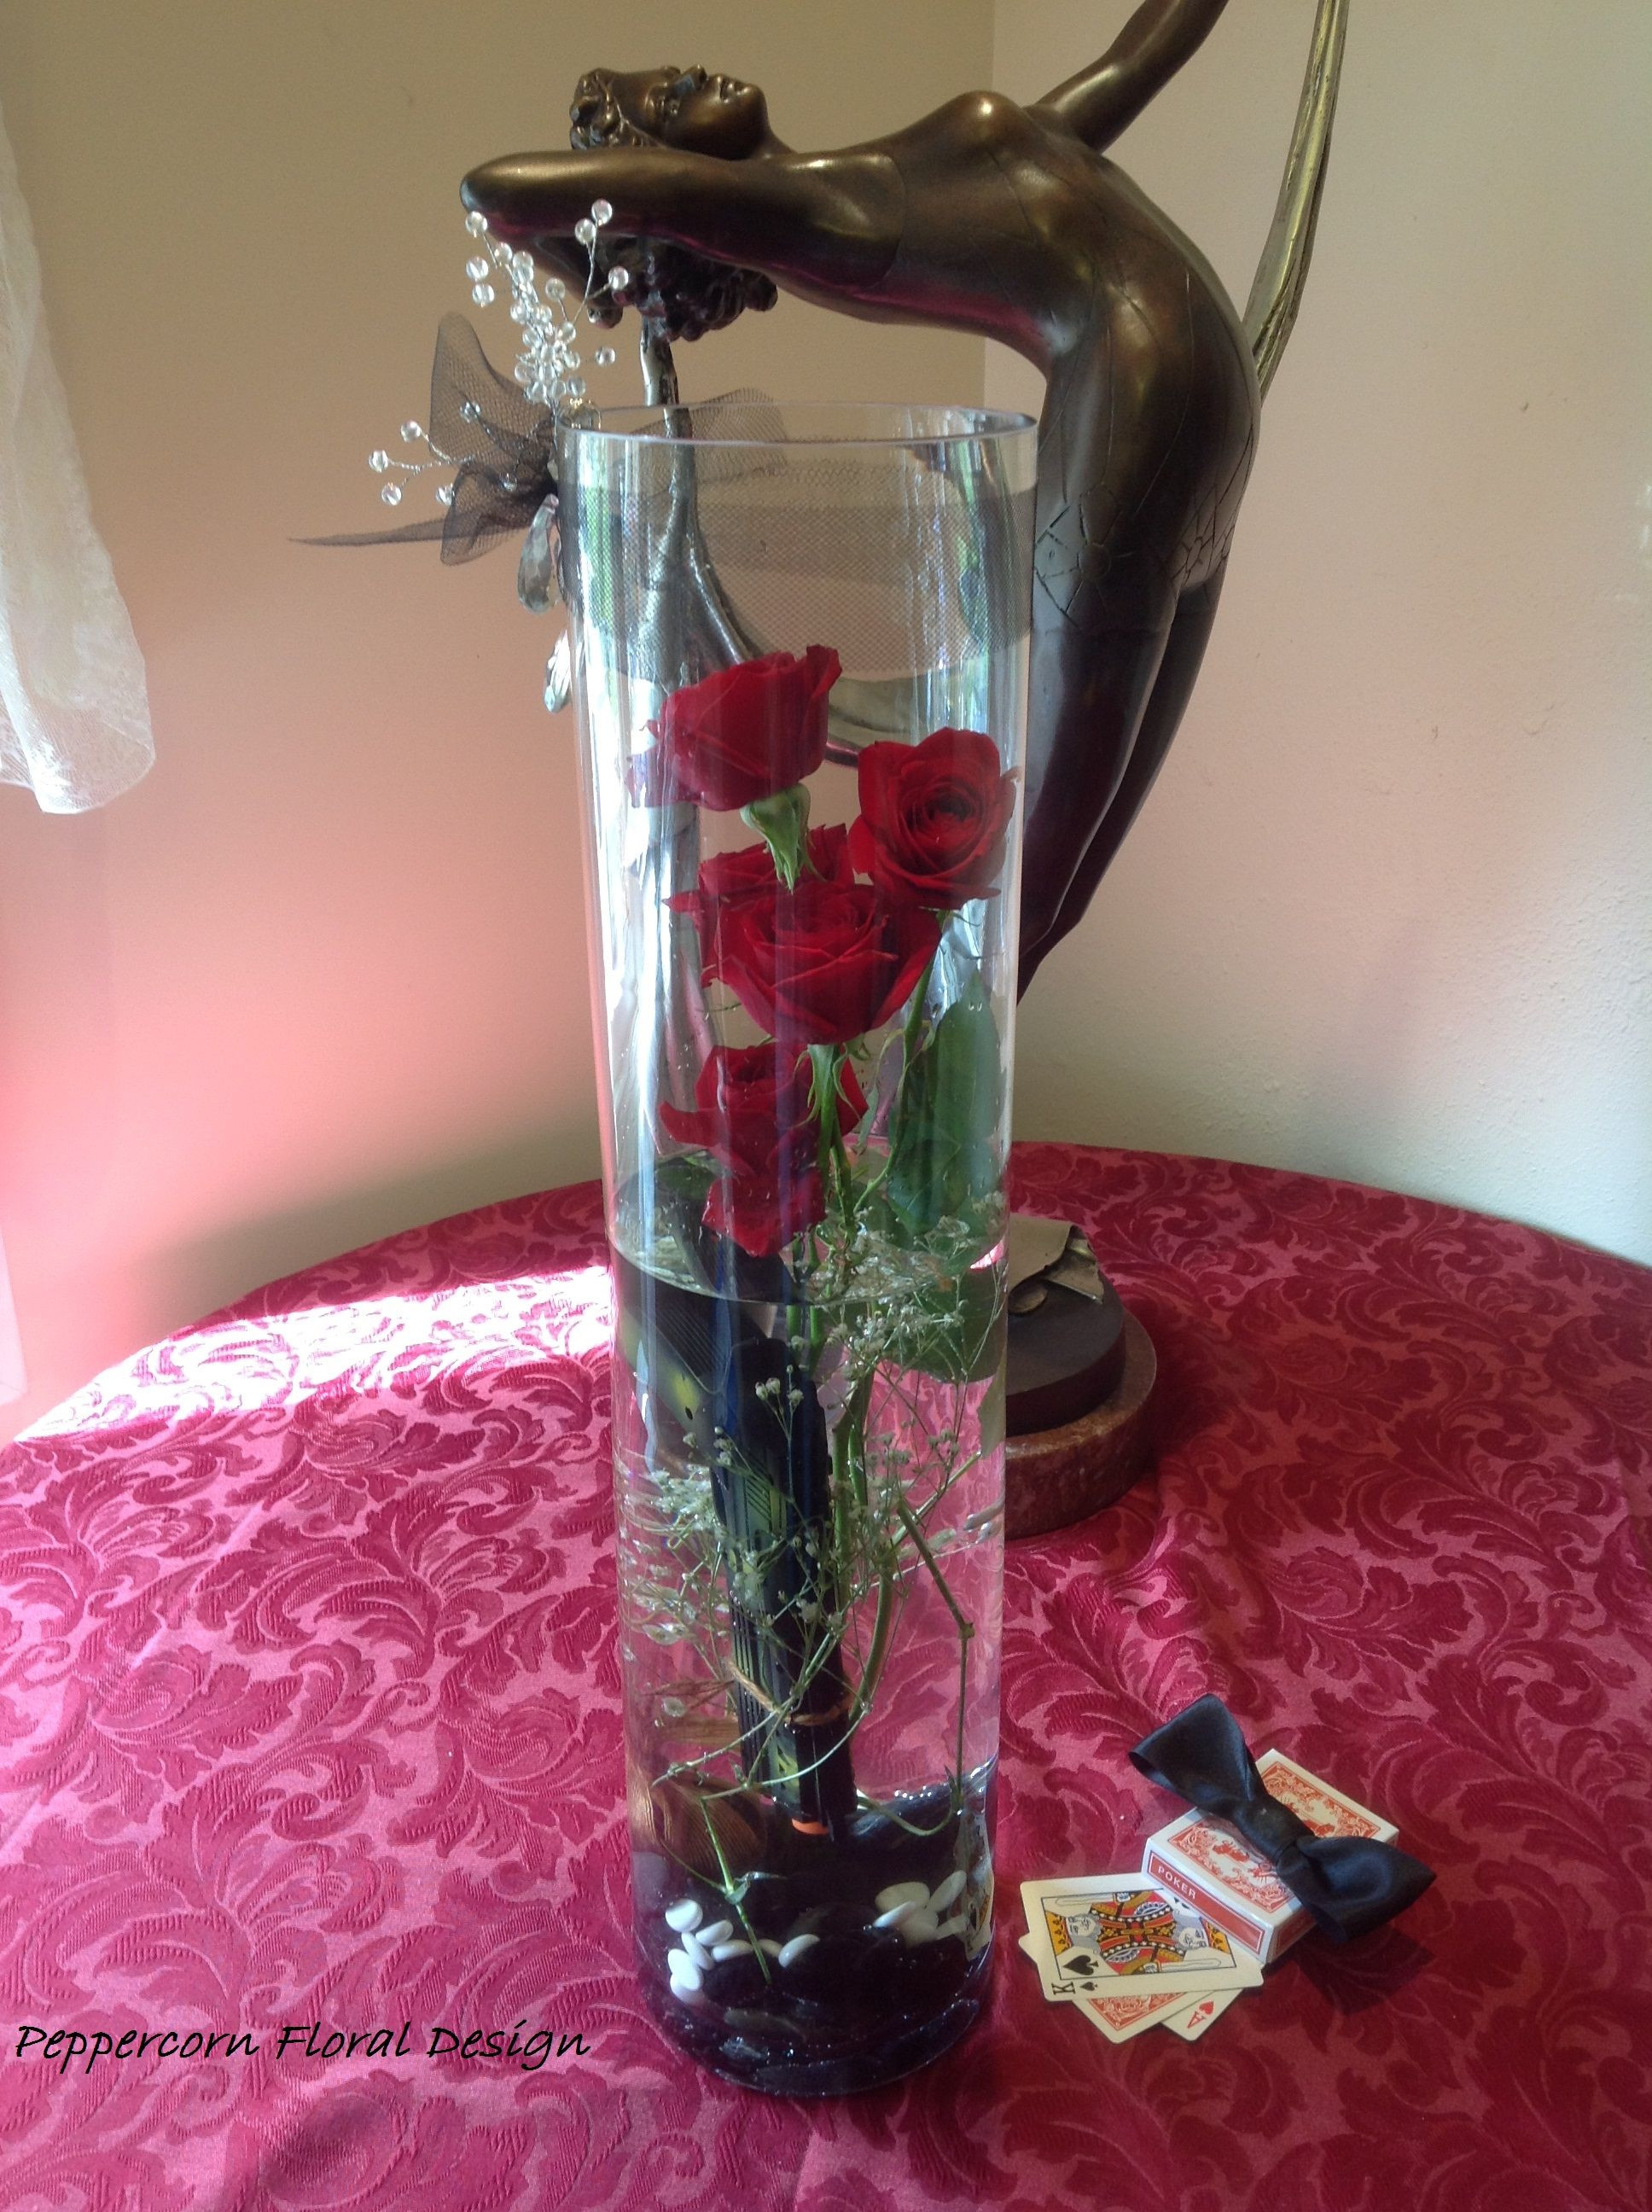 Glass Cylinder Vase Decoration Ideas Of Art Deco Lady Bronze Statue with Glass Cylinder Vase Flower Throughout Art Deco Lady Bronze Statue with Glass Cylinder Vase Flower Arrangement for Red Black and White Gangster theme Murder Mystery Party Add Cards and Bow Tie